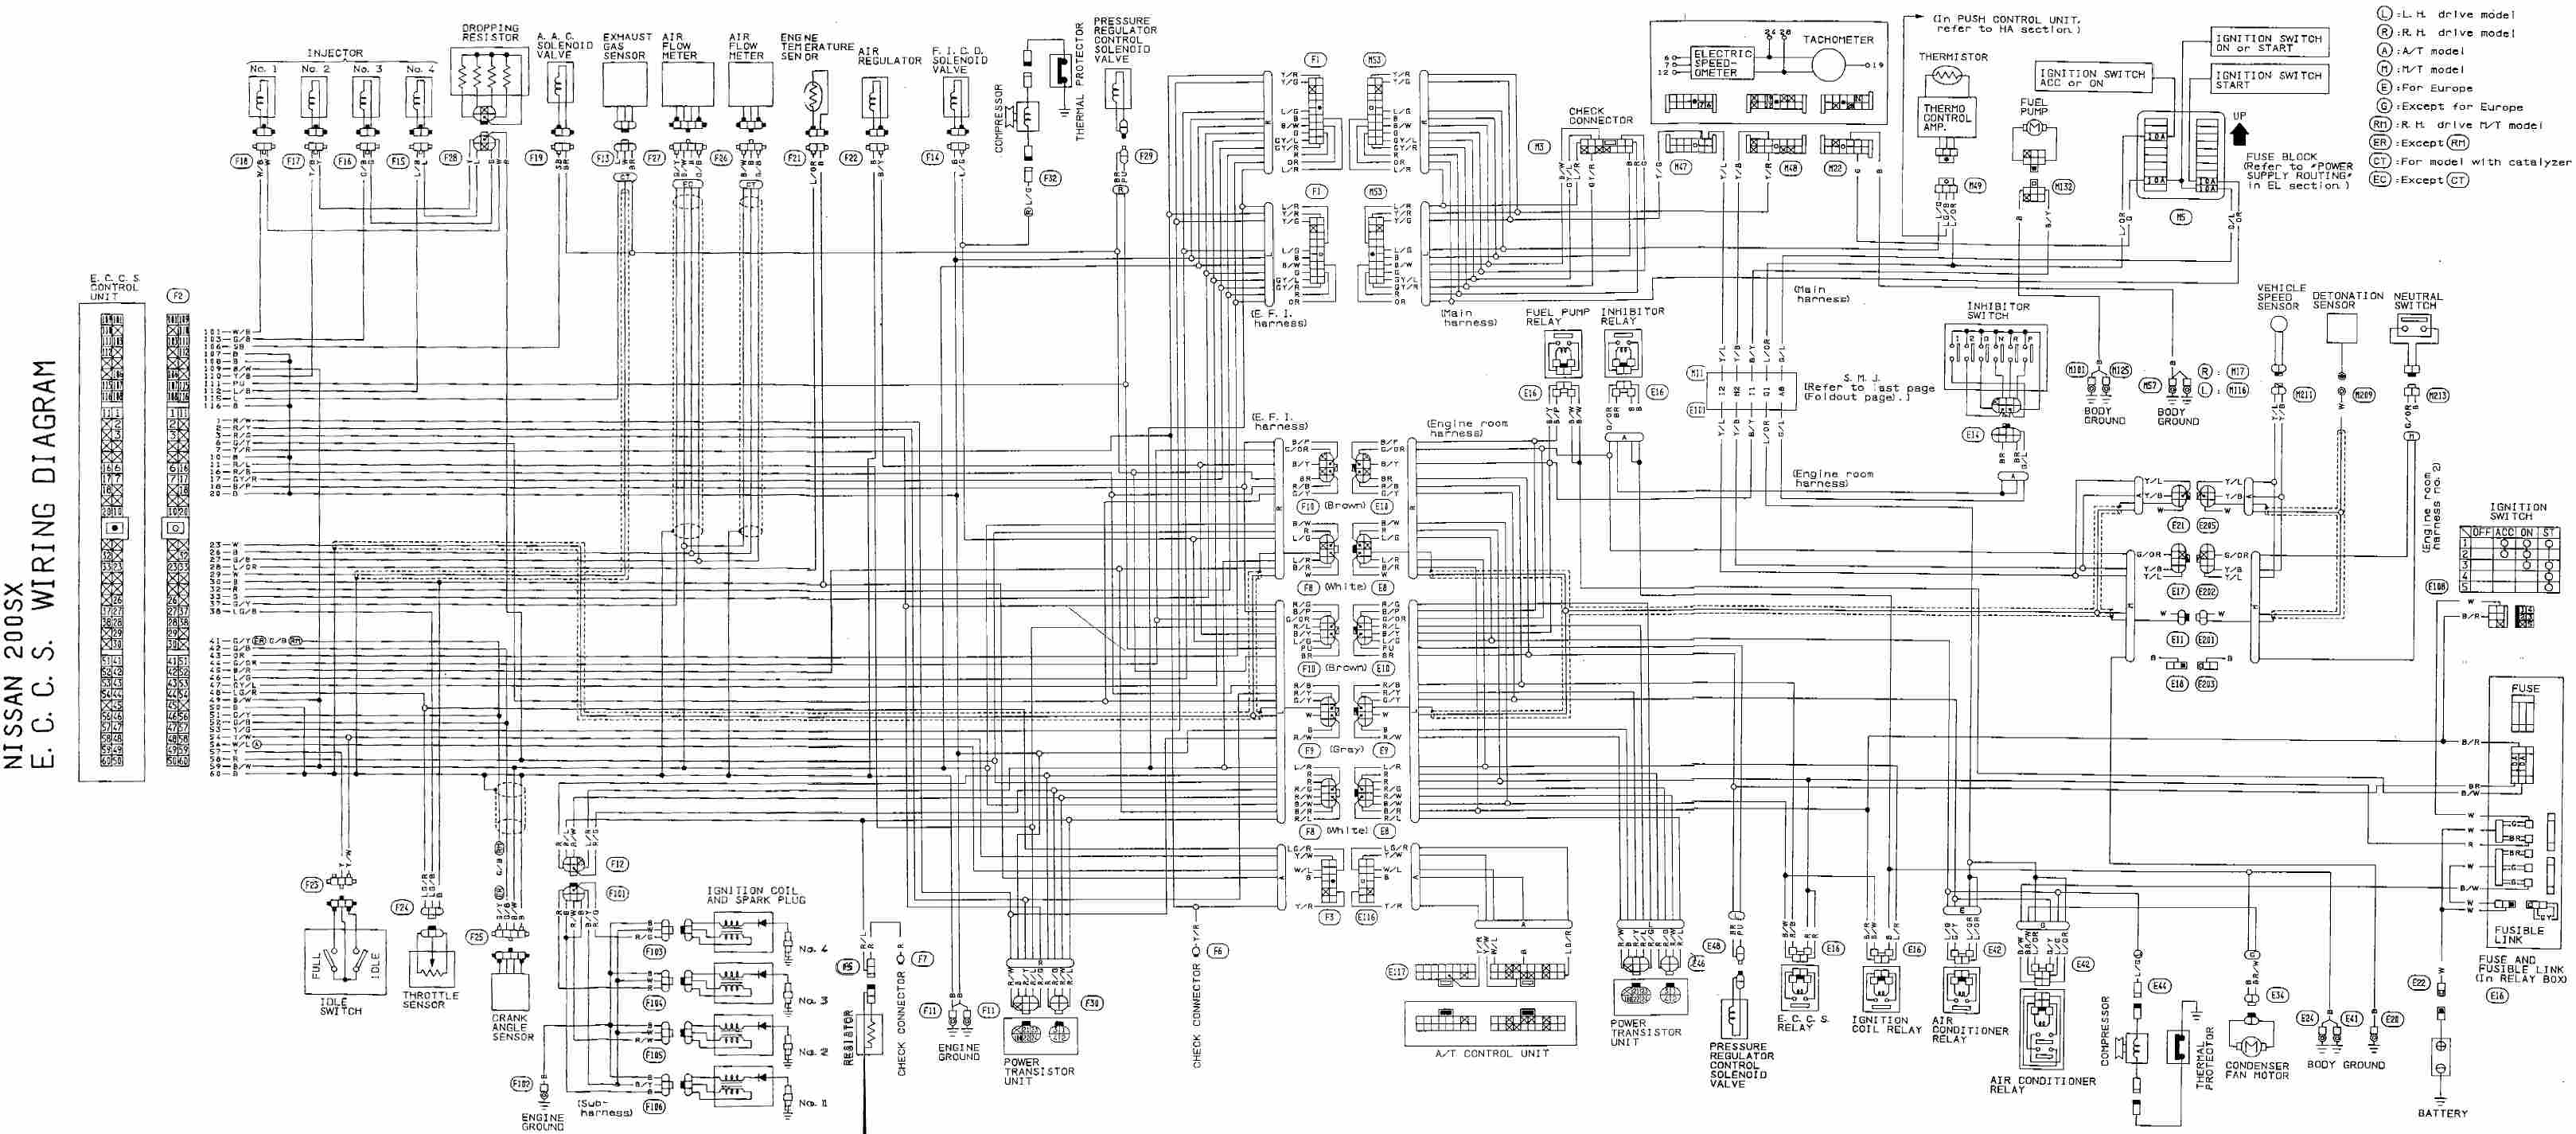 2010 Nissan Sentra Wiring Diagrams Free Download Wiring Diagram Wire Center